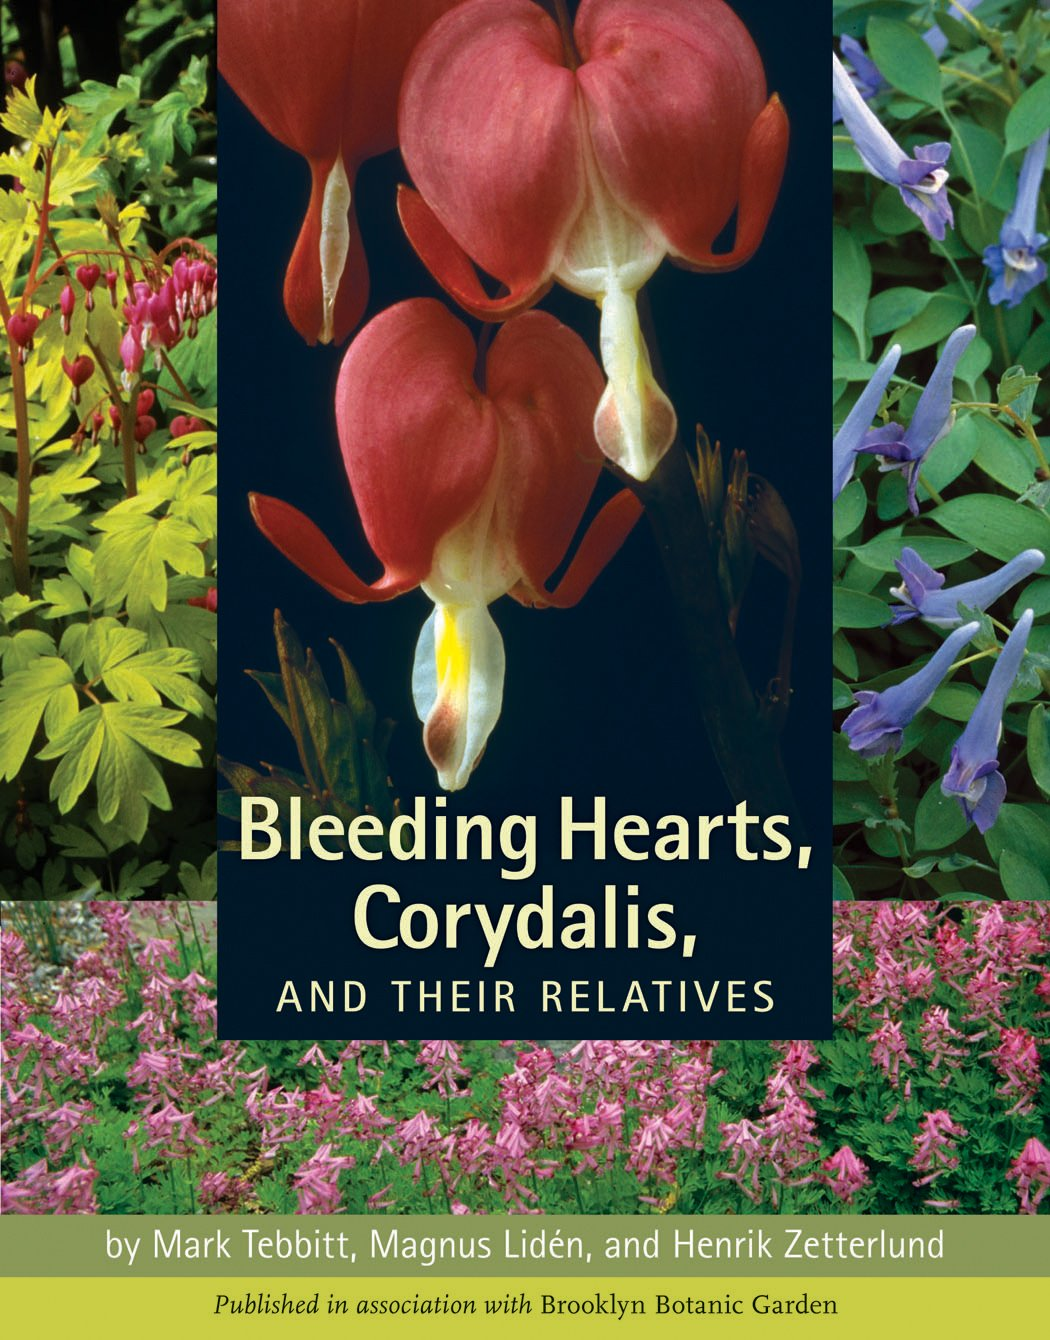 Bleeding Hearts, Corydalis, and Their Relatives